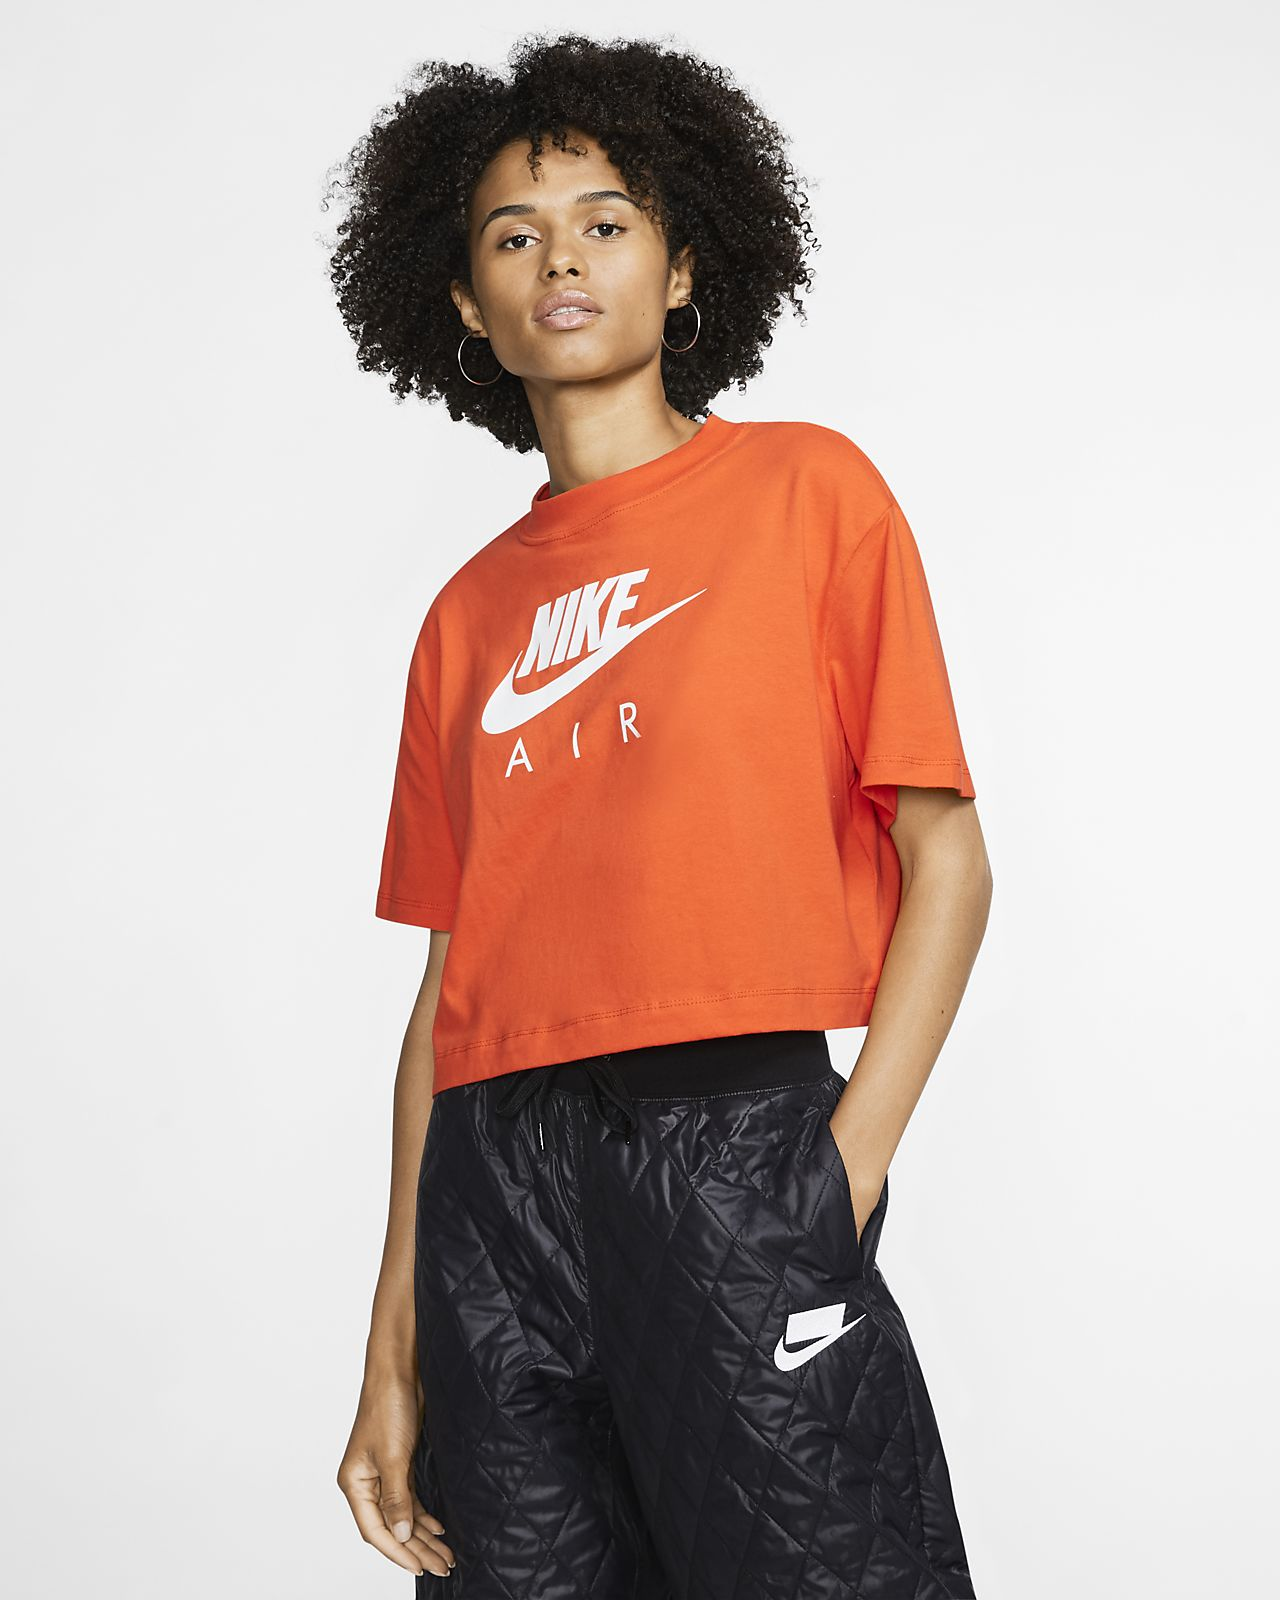 Nike Air Women's Short Sleeve Top